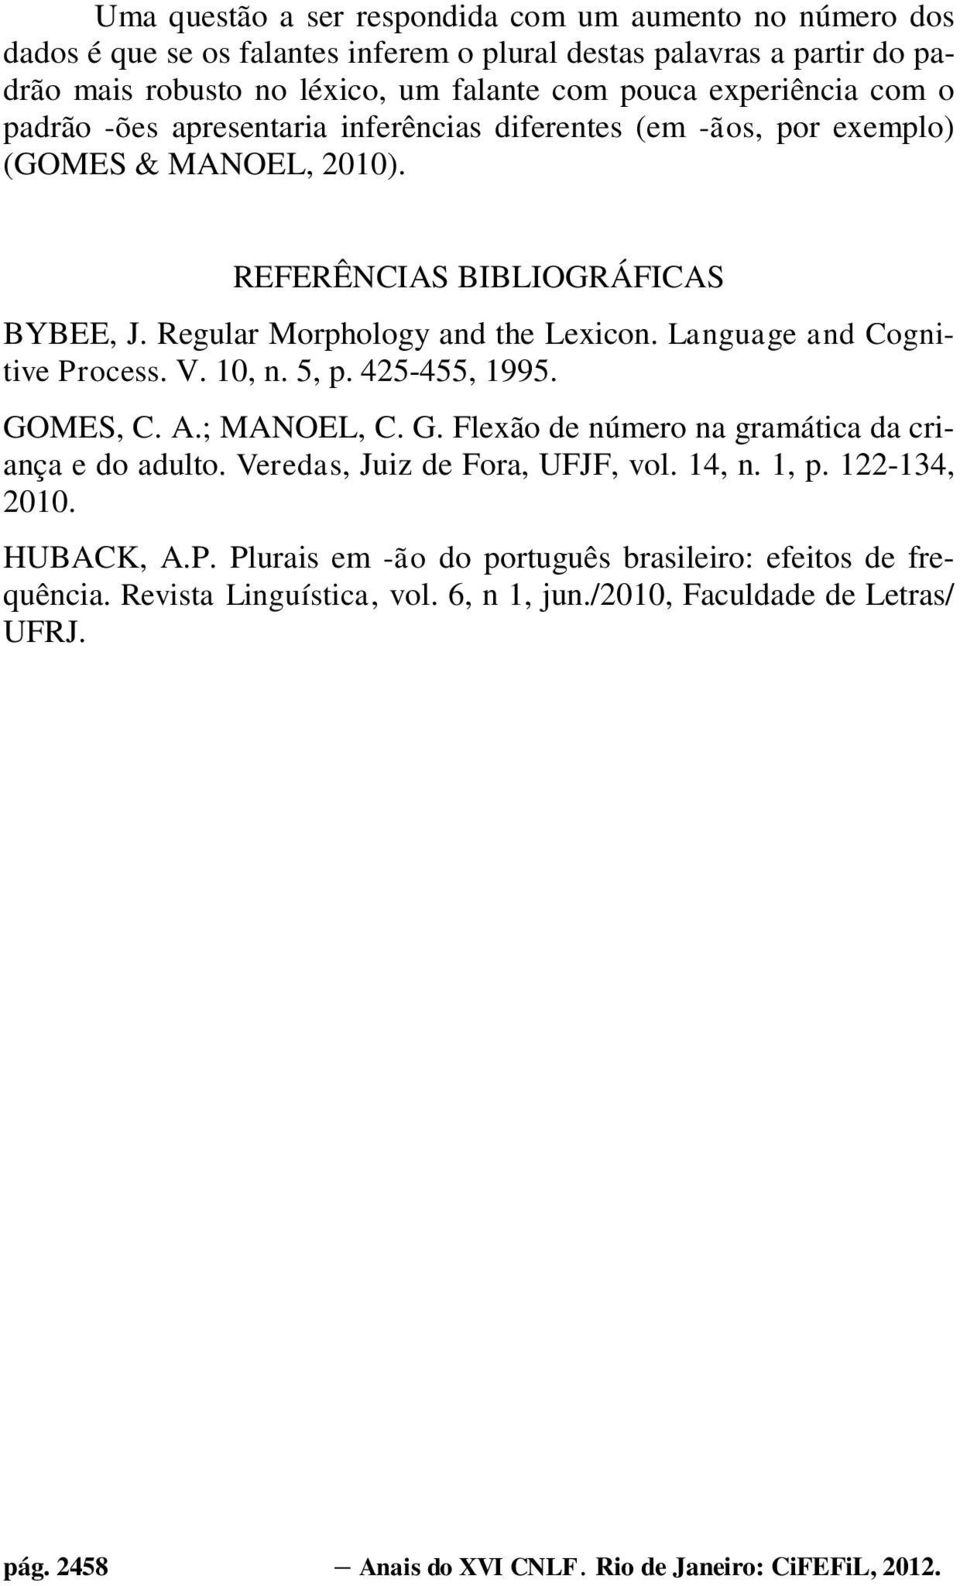 Language and Cognitive Process. V. 10, n. 5, p. 425-455, 1995. GOMES, C. A.; MANOEL, C. G. Flexão de número na gramática da criança e do adulto. Veredas, Juiz de Fora, UFJF, vol. 14, n. 1, p.